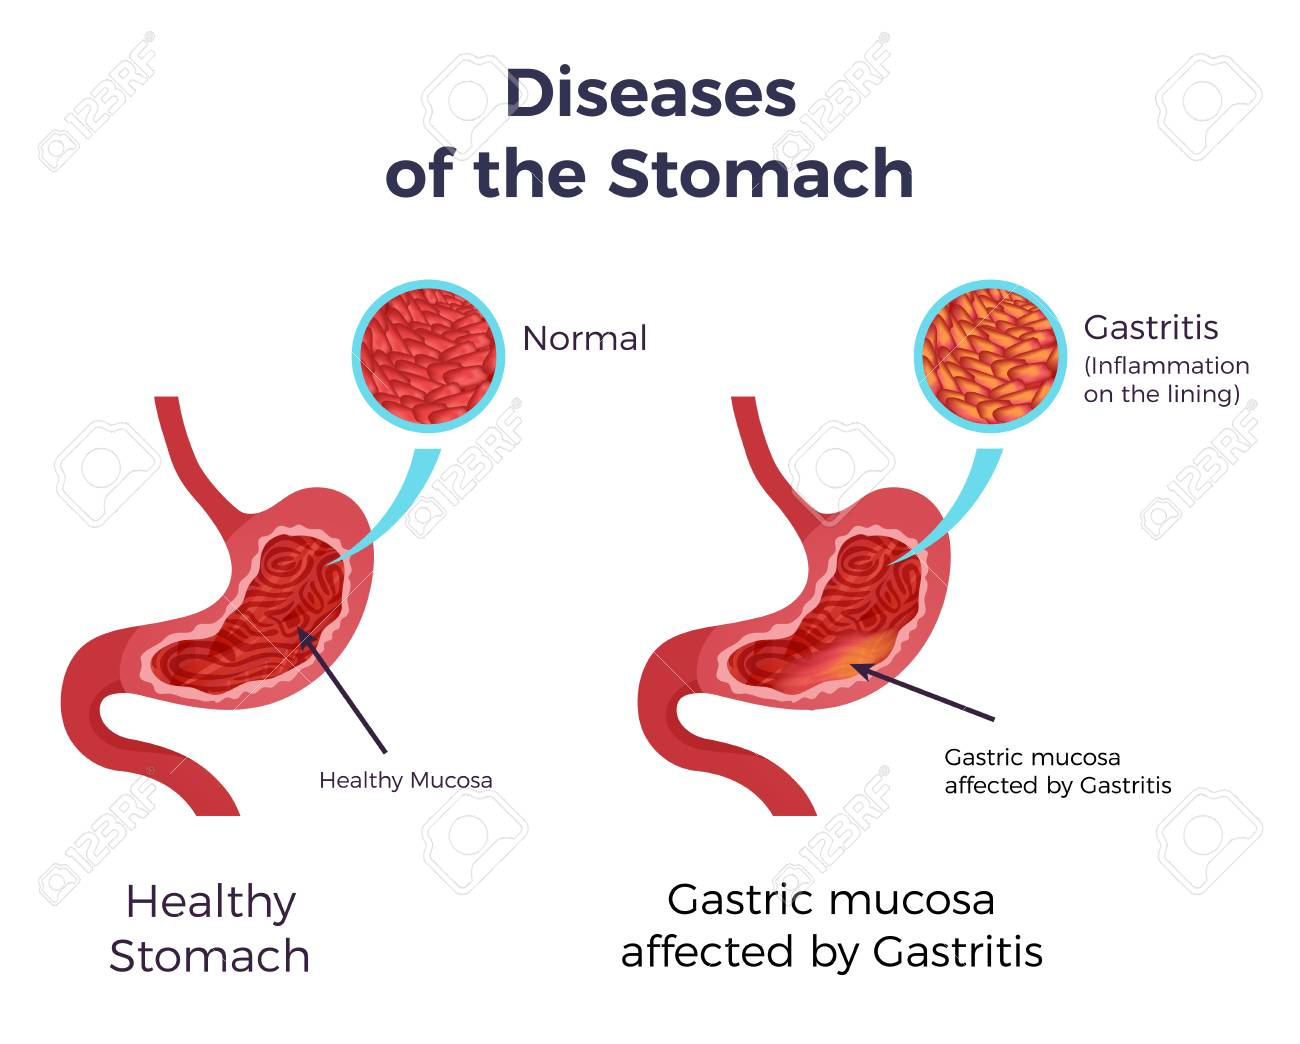 Human normal stomach compared to gastritis affected swollen inflamed mucosa lining flat set infographic poster vector illustration - 108292399